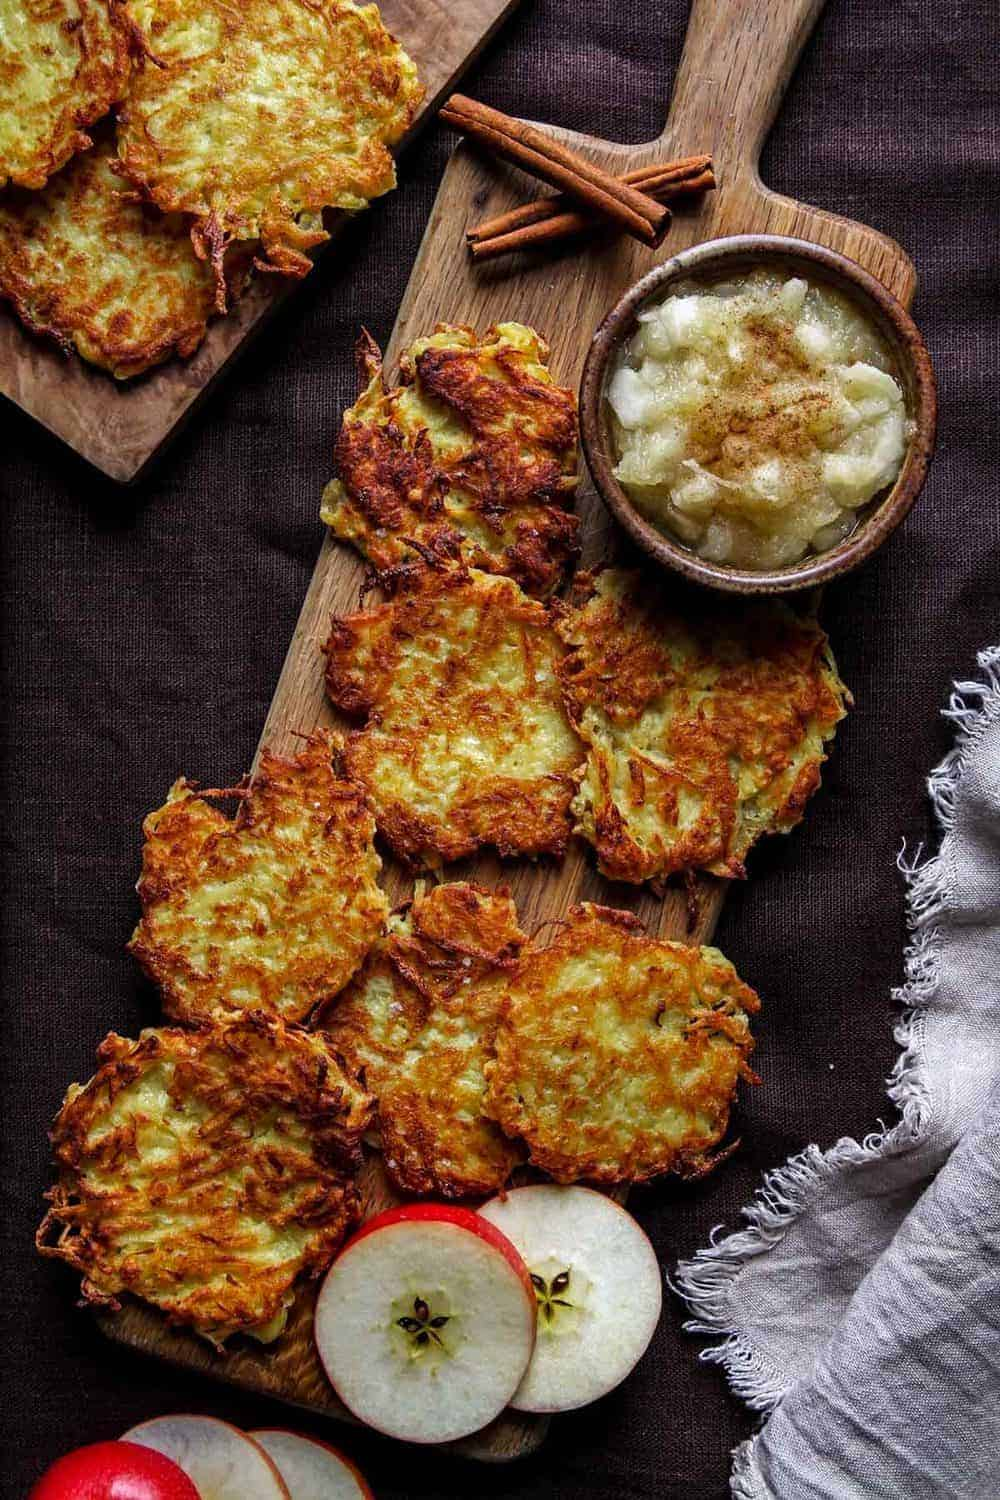 Potato pancakes on a wooden board in a single layer with applesauce.